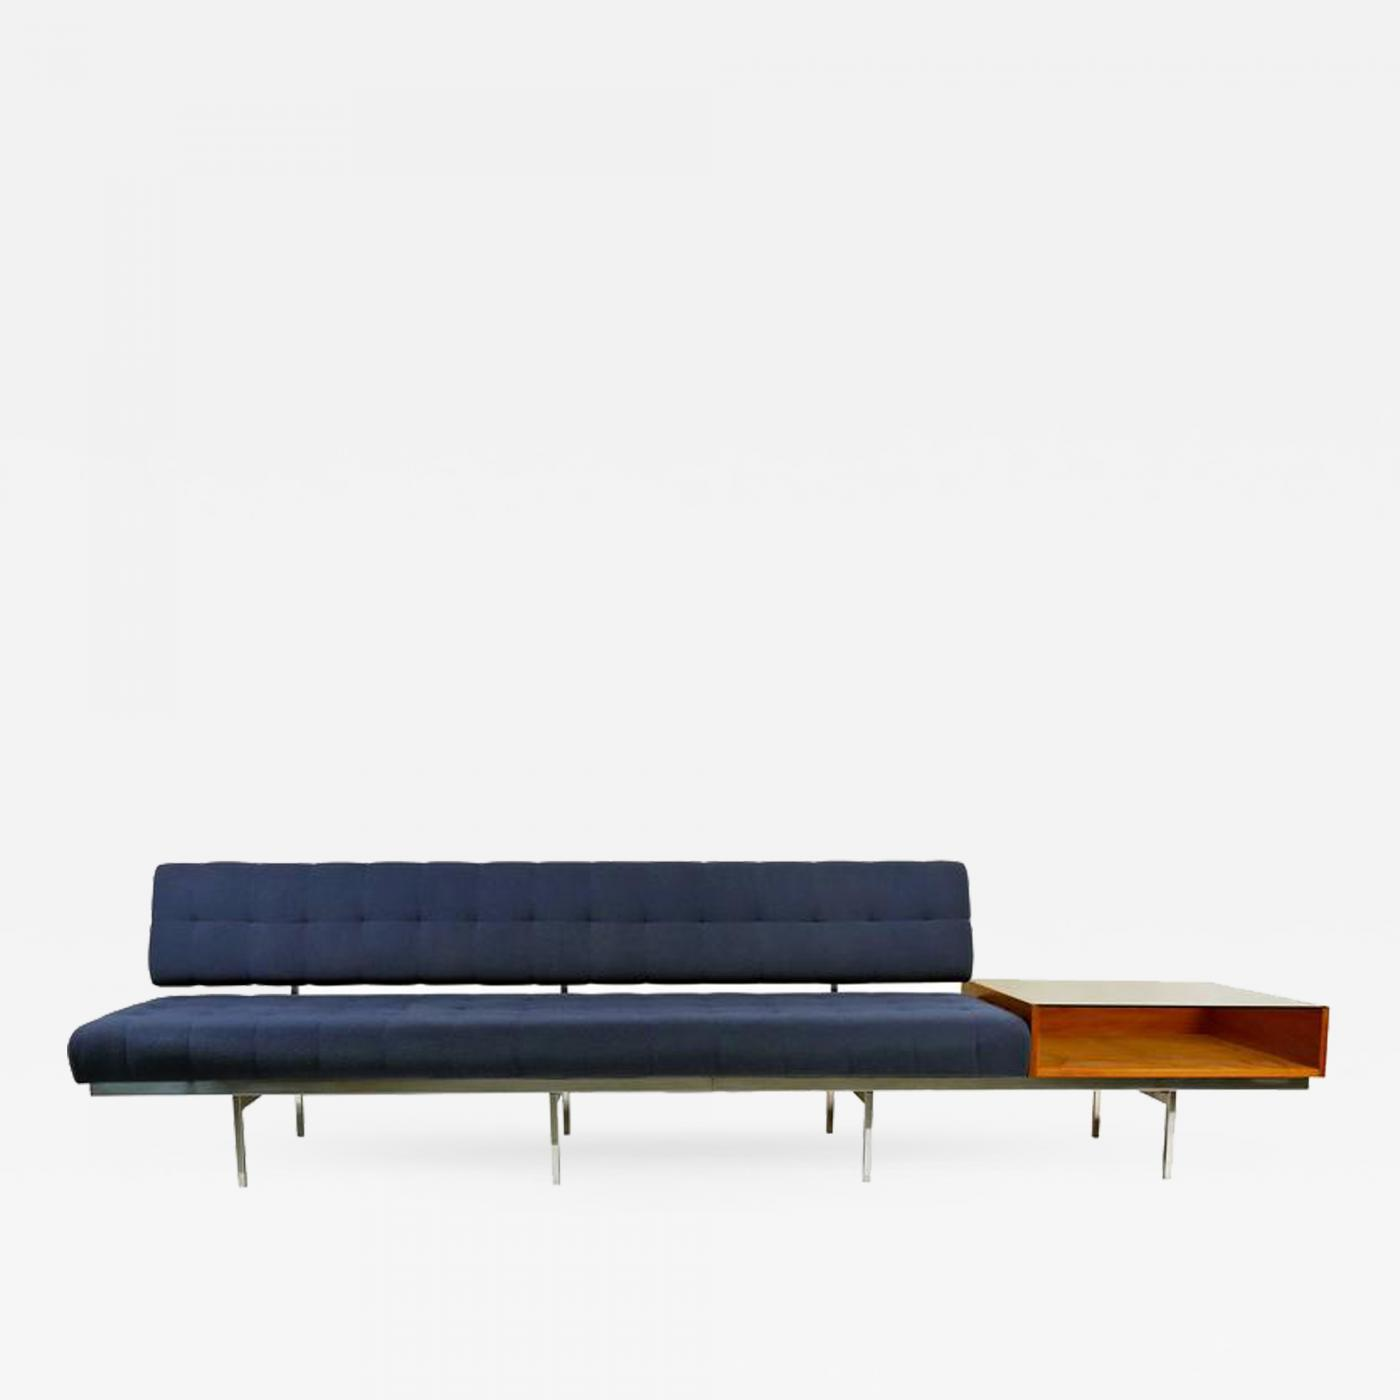 Knoll Sofa Florence Knoll Architectural Florence Knoll Sofa With Table Attachment For Knoll